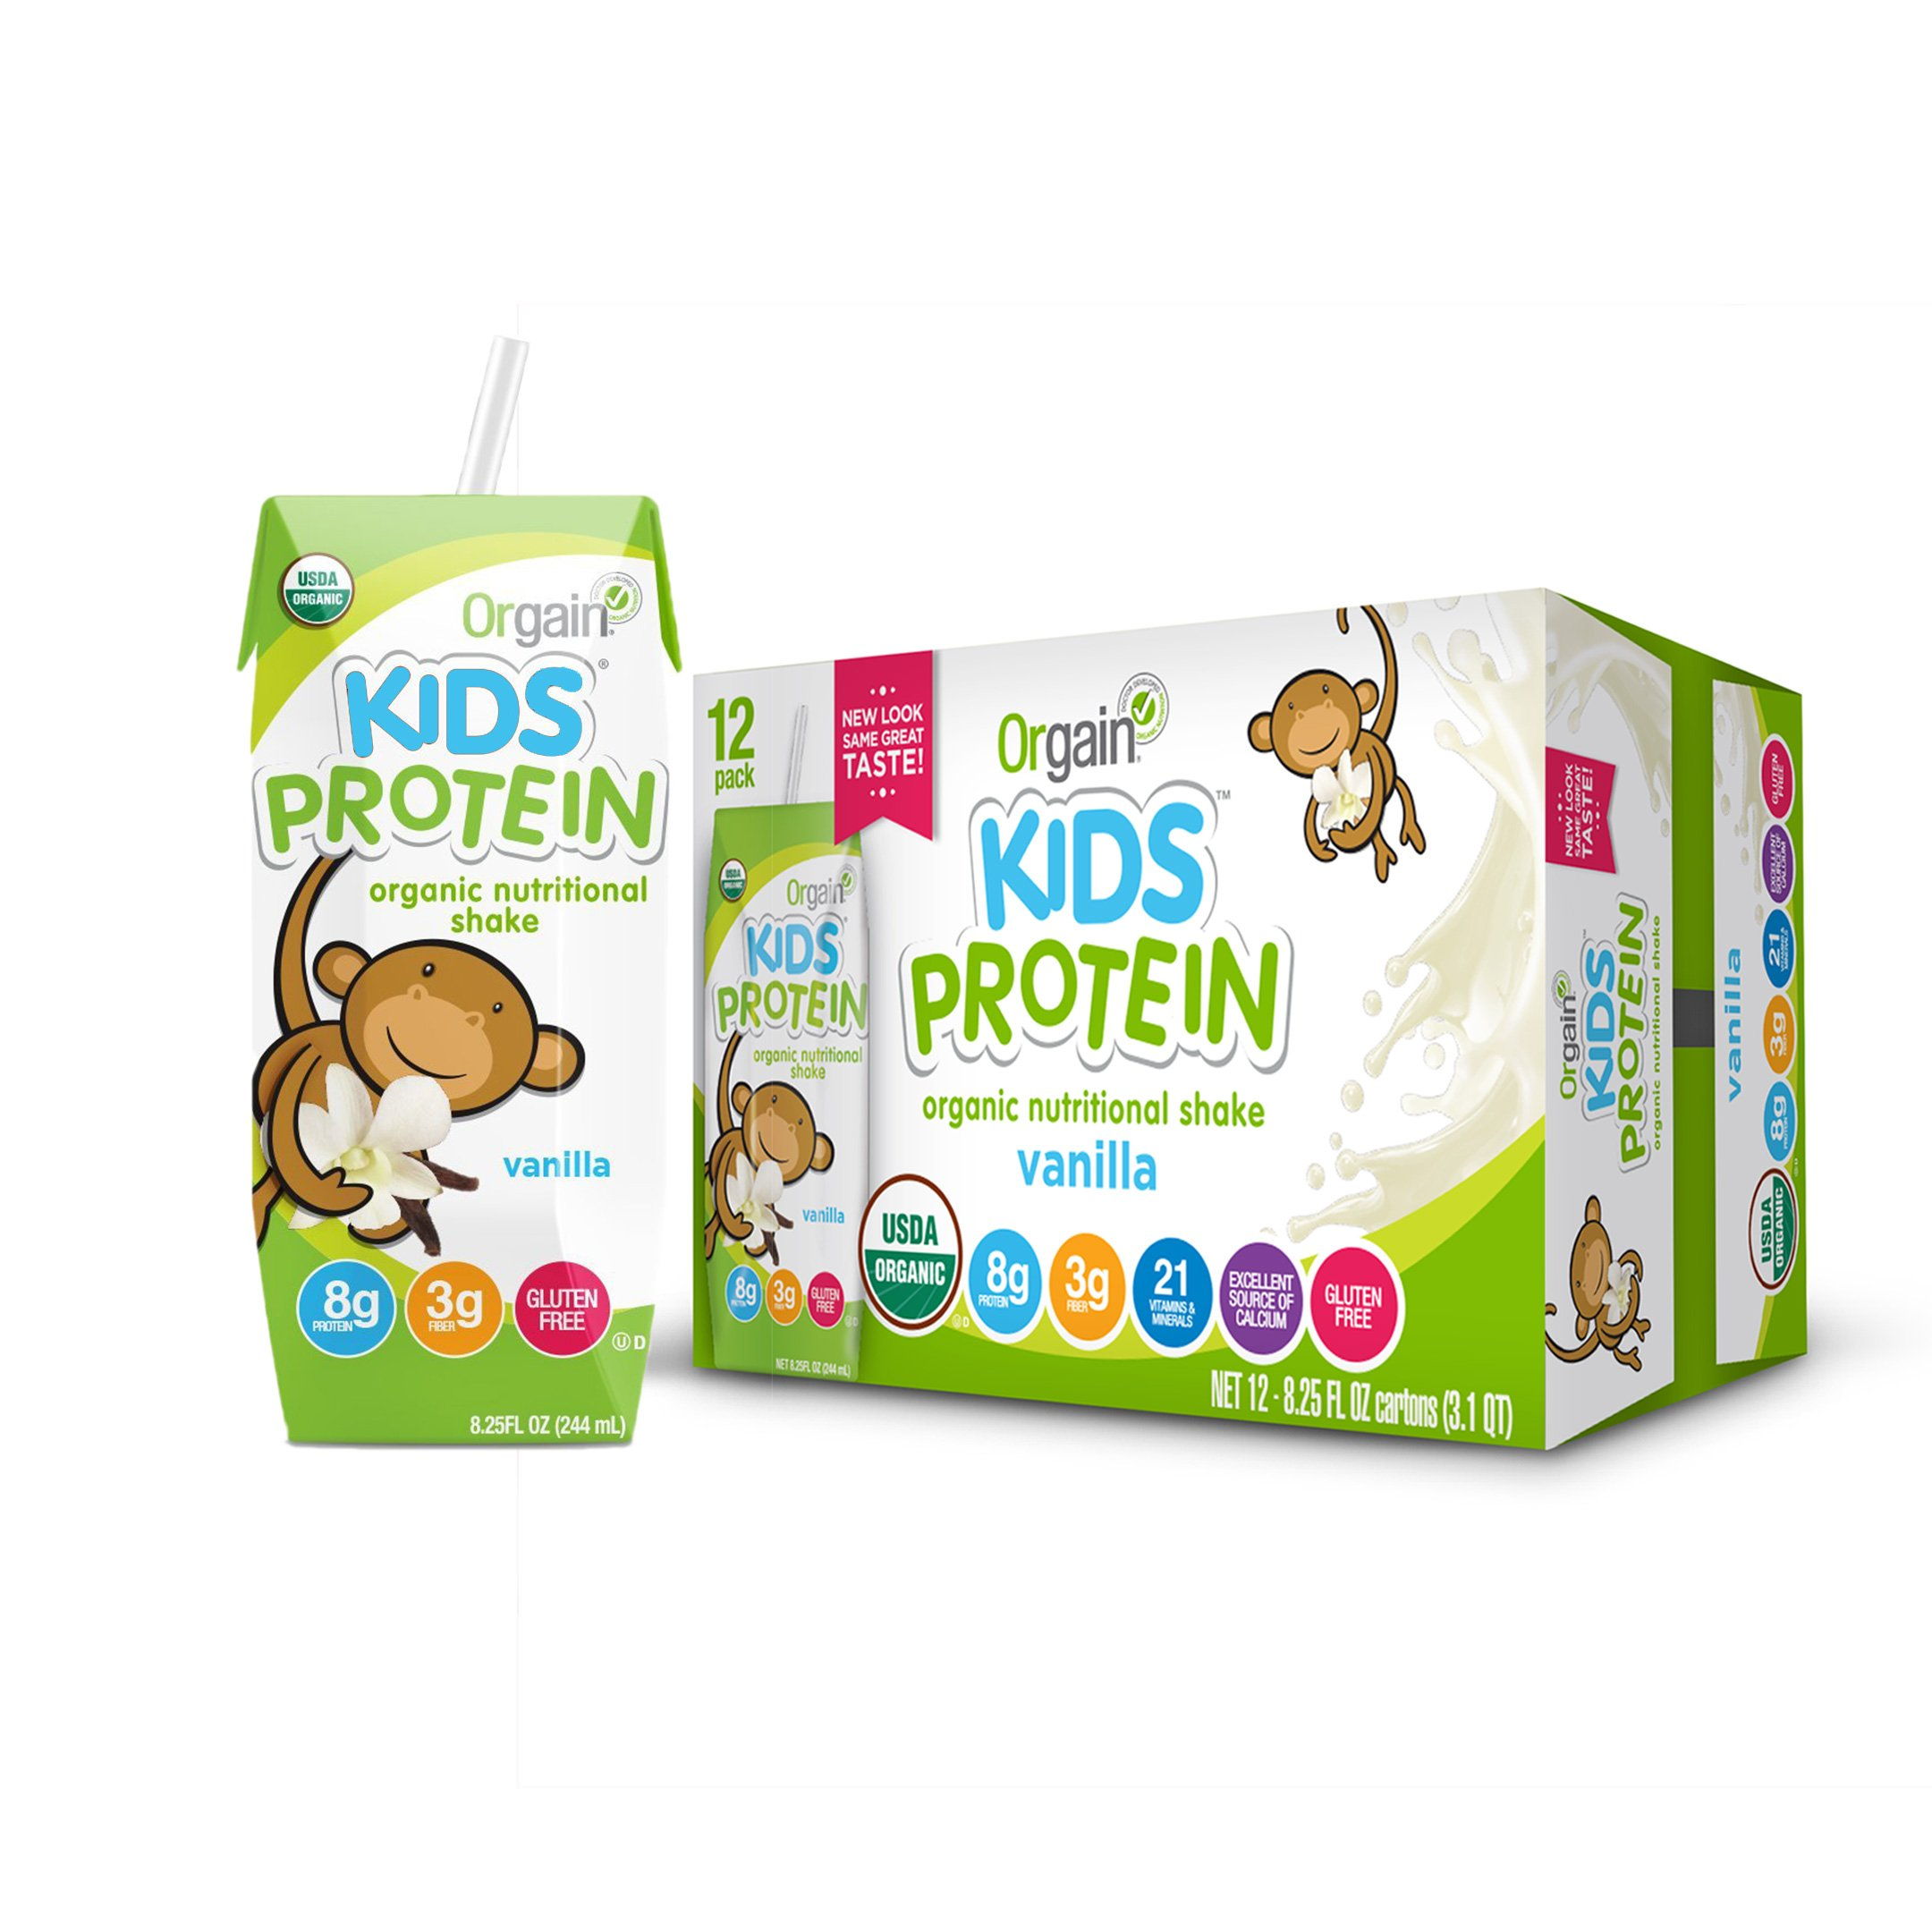 Orgain Organic Kids Protein Nutritional Shake, Vanilla - Great for Breakfast & Snacks, 21 Vitamins & Minerals, 10 Fruits & Vegetables, Gluten Free, Soy Free, Kosher, Non-GMO, 8.25 Ounce, 12 Count by Orgain